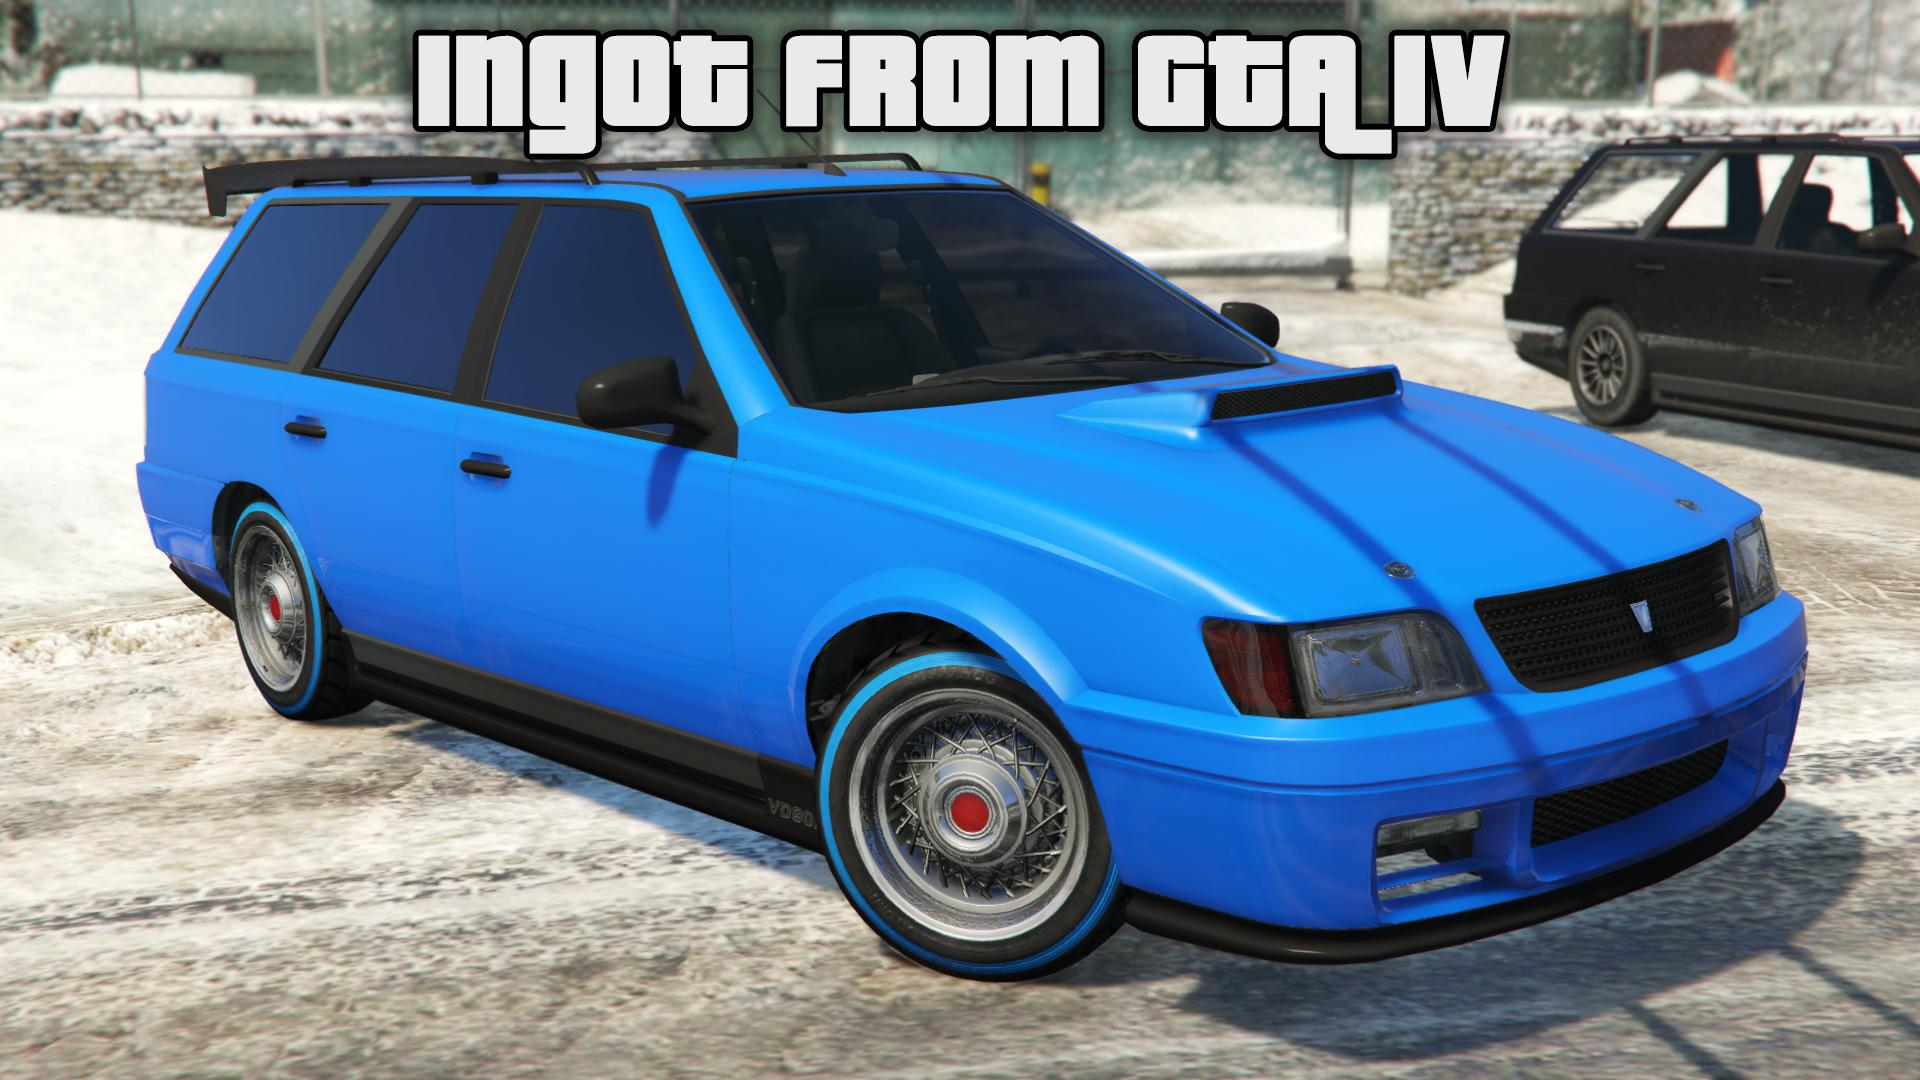 Ingot VD90R from GTA IV [Replace] - GTA5-Mods.com